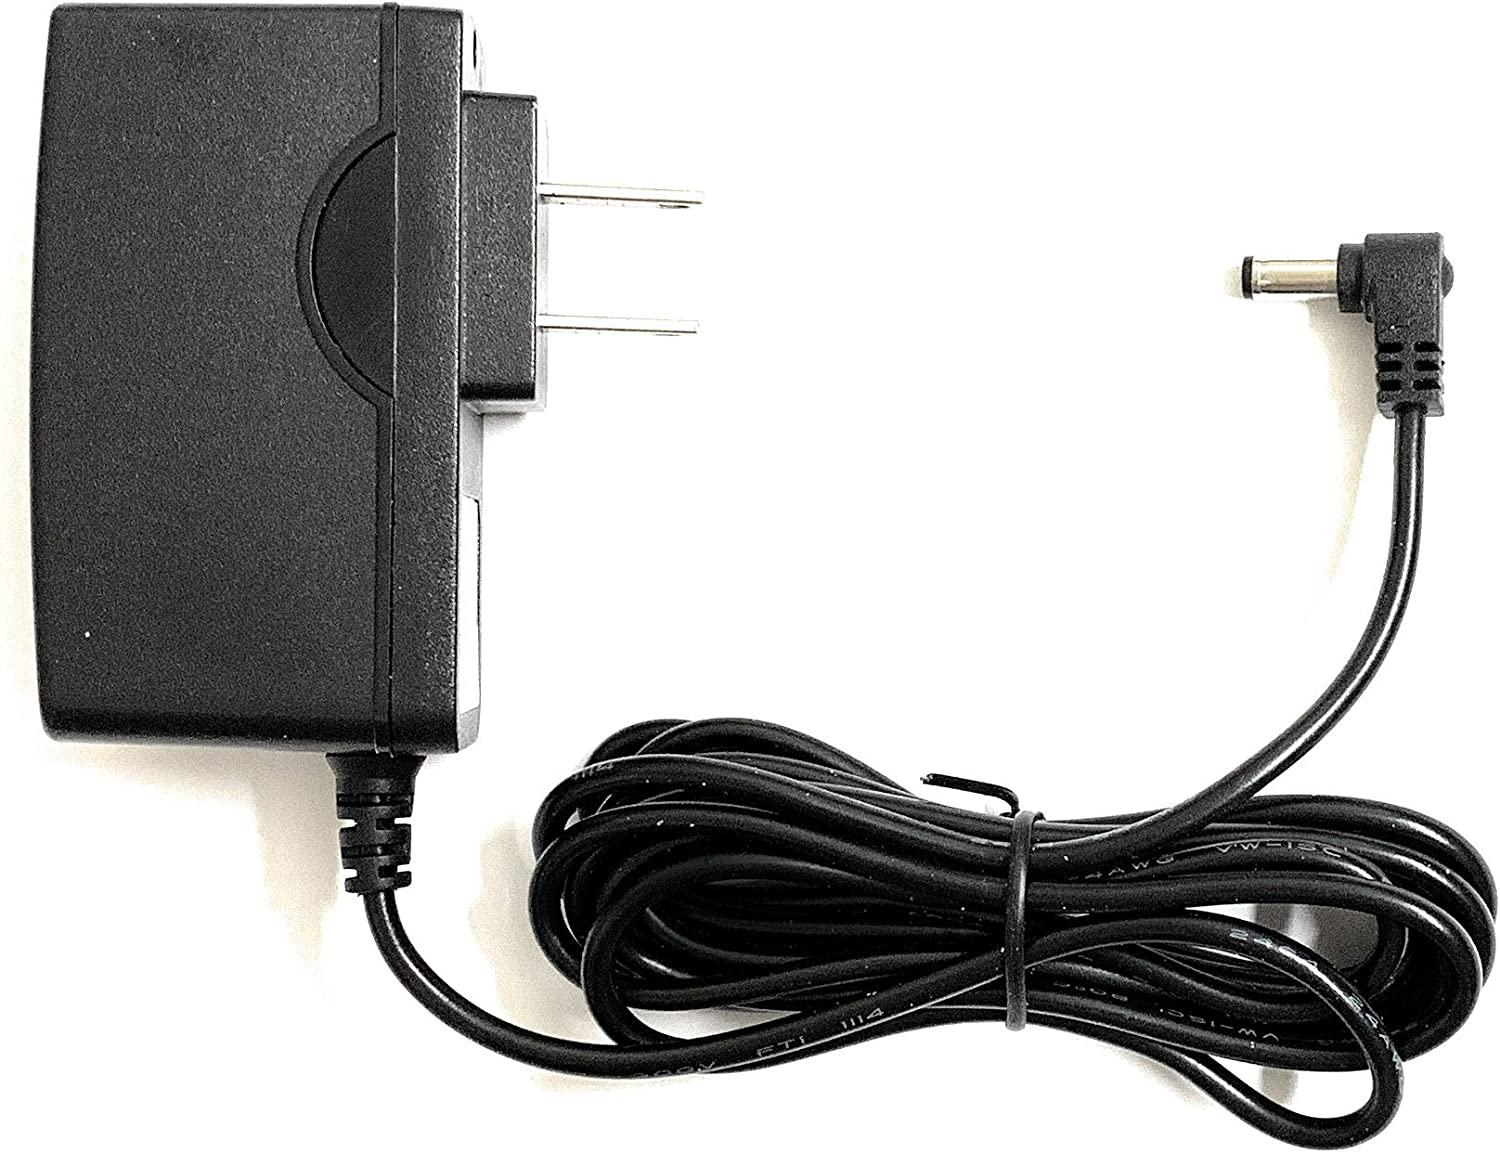 Power Supply for Dreadbox Erebus V3 AC Adapter Duophonic Synthesizer